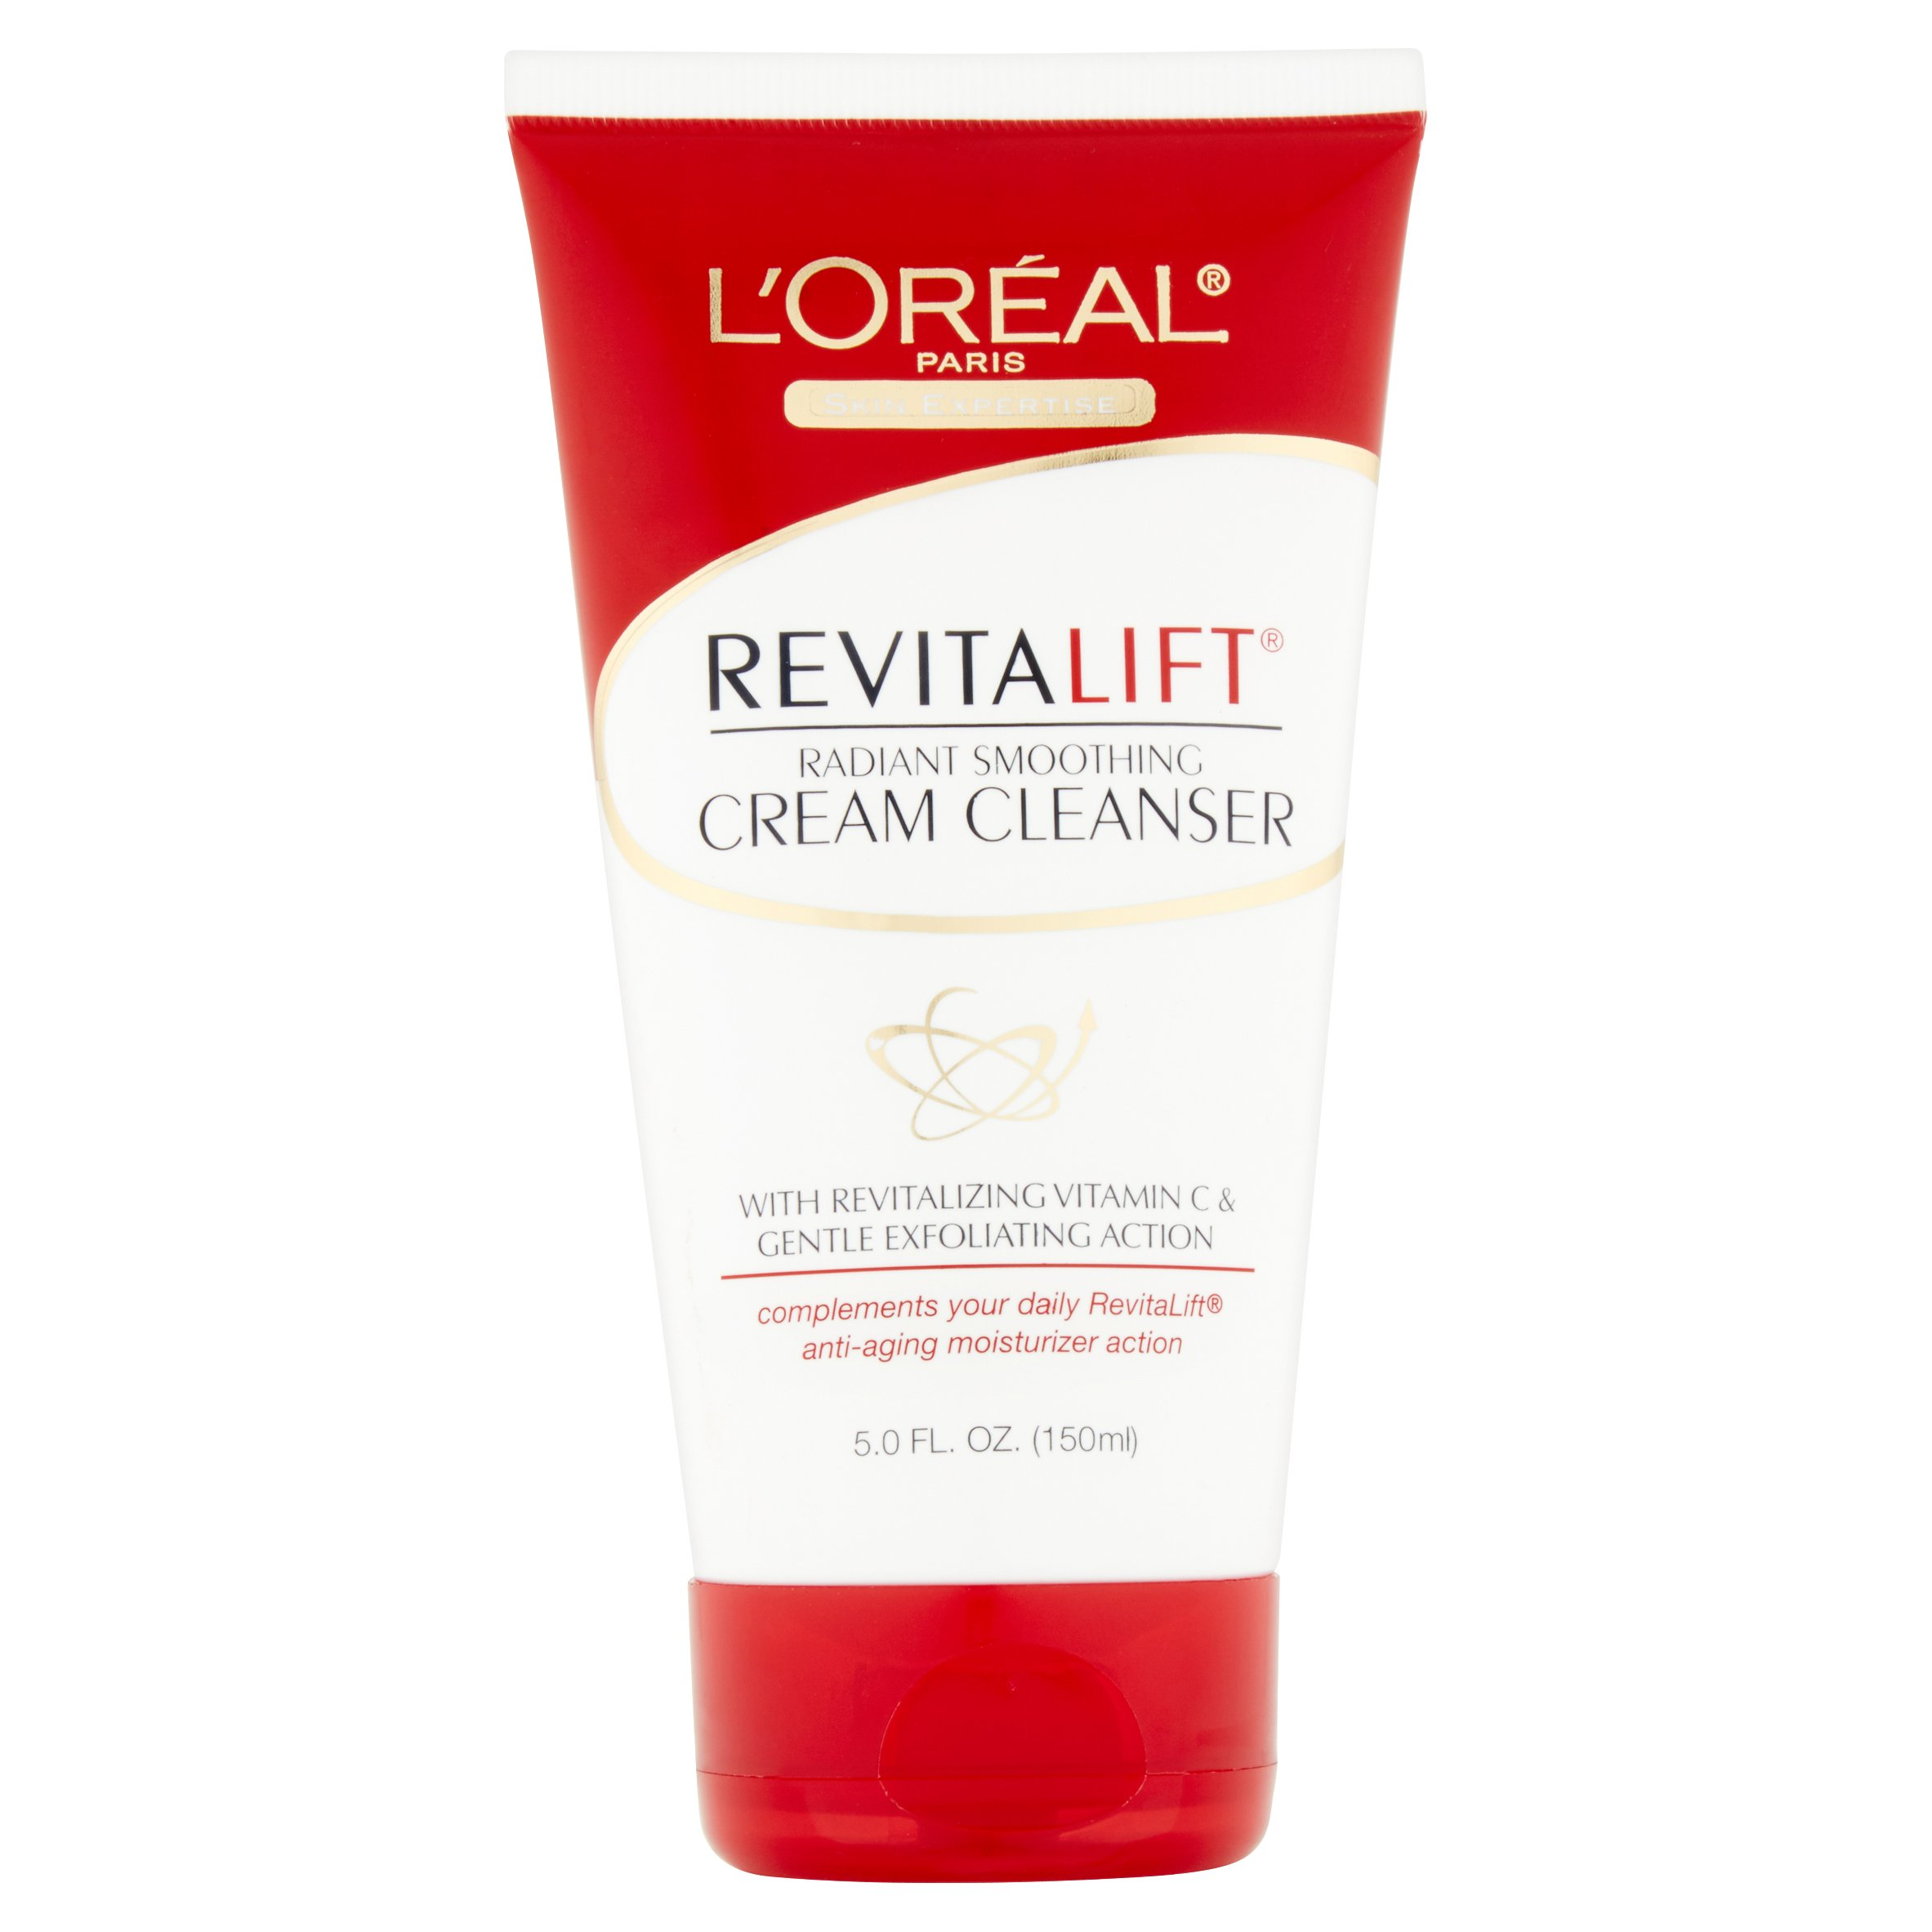 L'Oreal Paris Skin Expertise Revitalift Radiant Smoothing Cream Cleanser, 5.0 fl oz